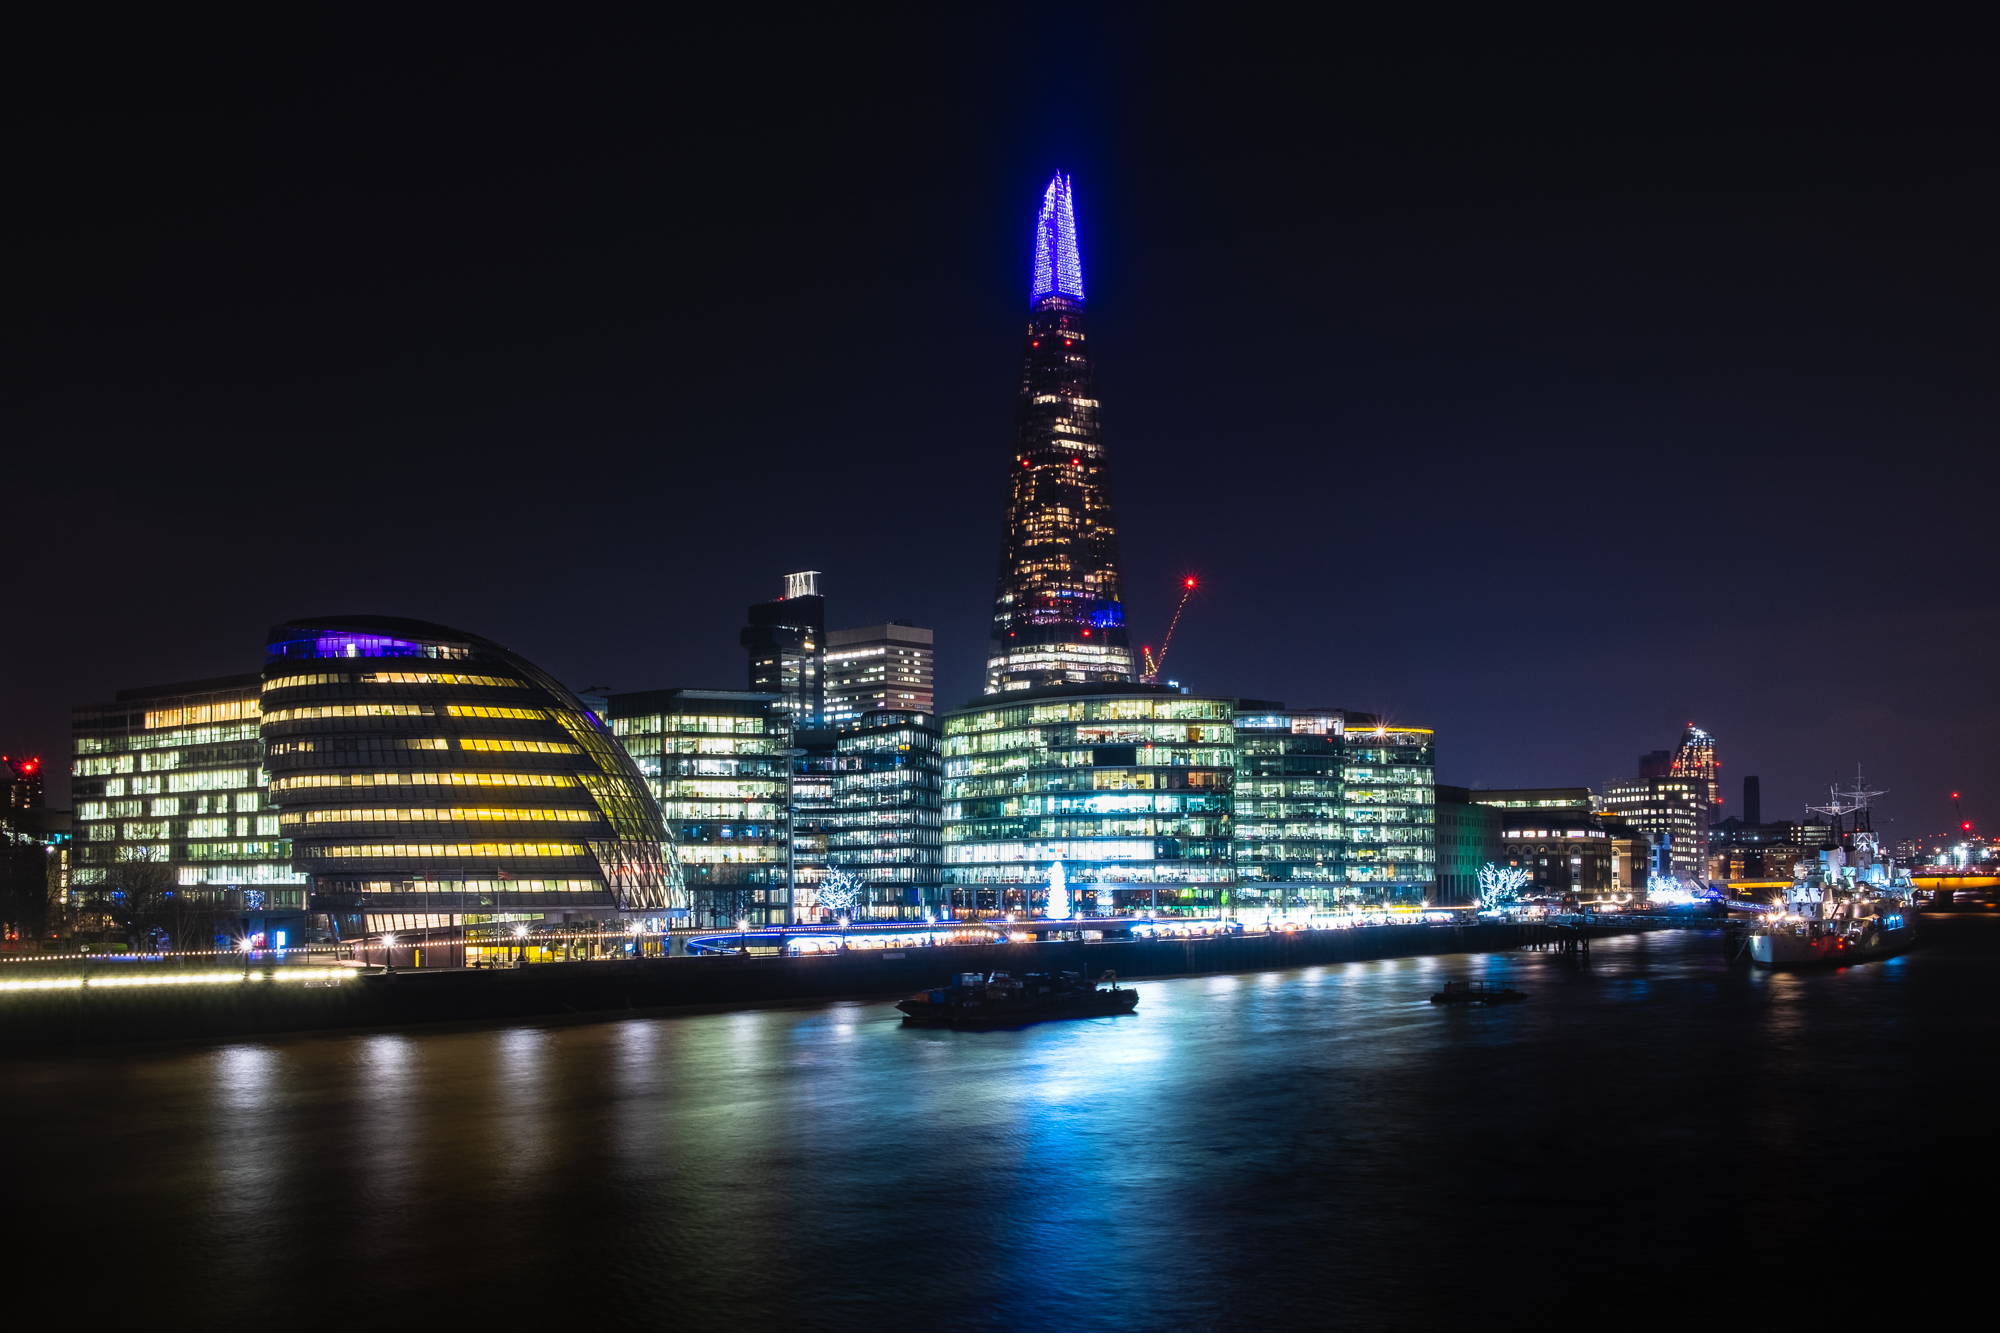 A photo of the Shard along the Thames at Christmas taken by Trevor Sheriwn